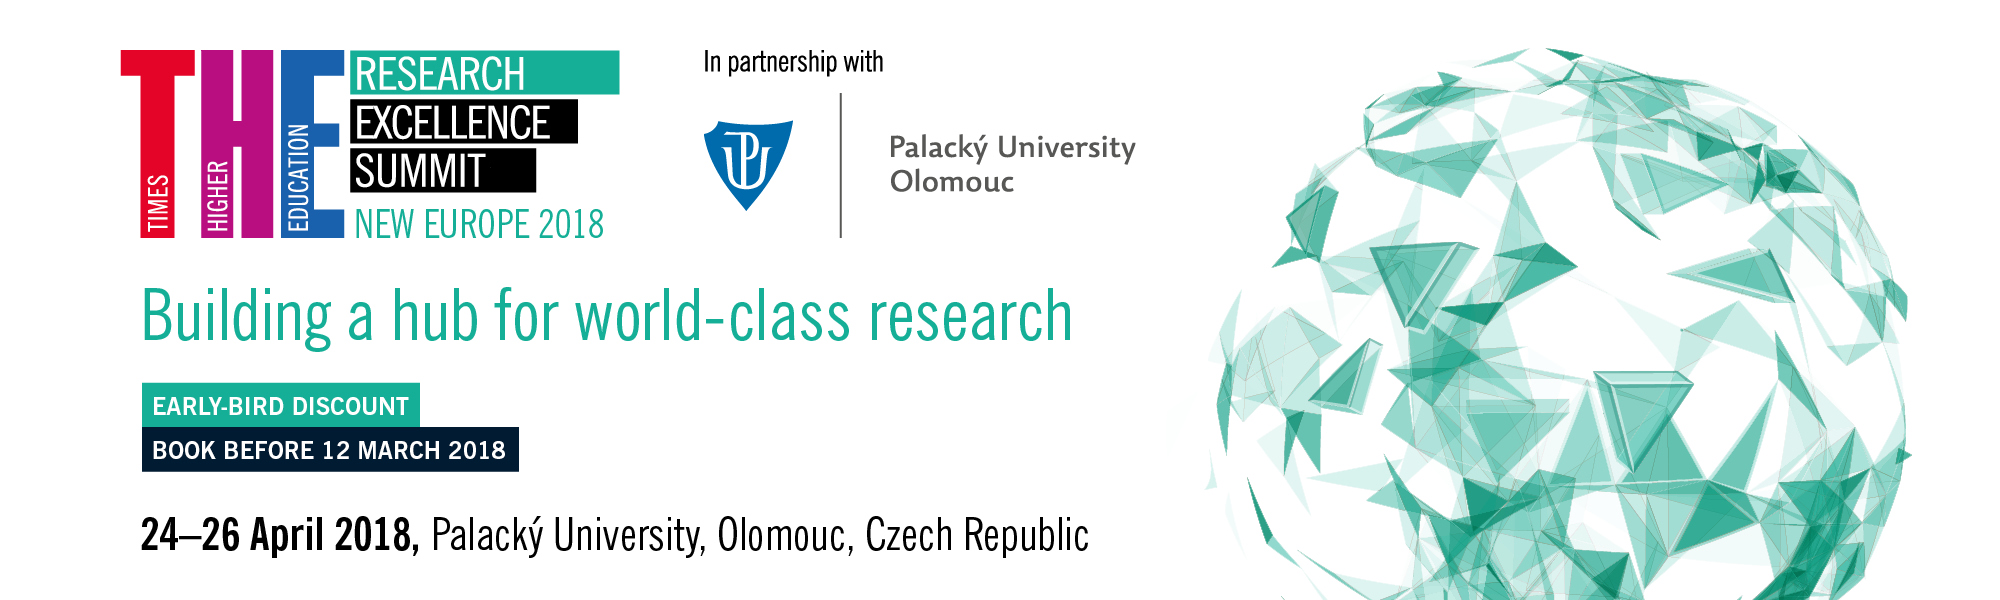 THE Research Excellence Summit: New Europe